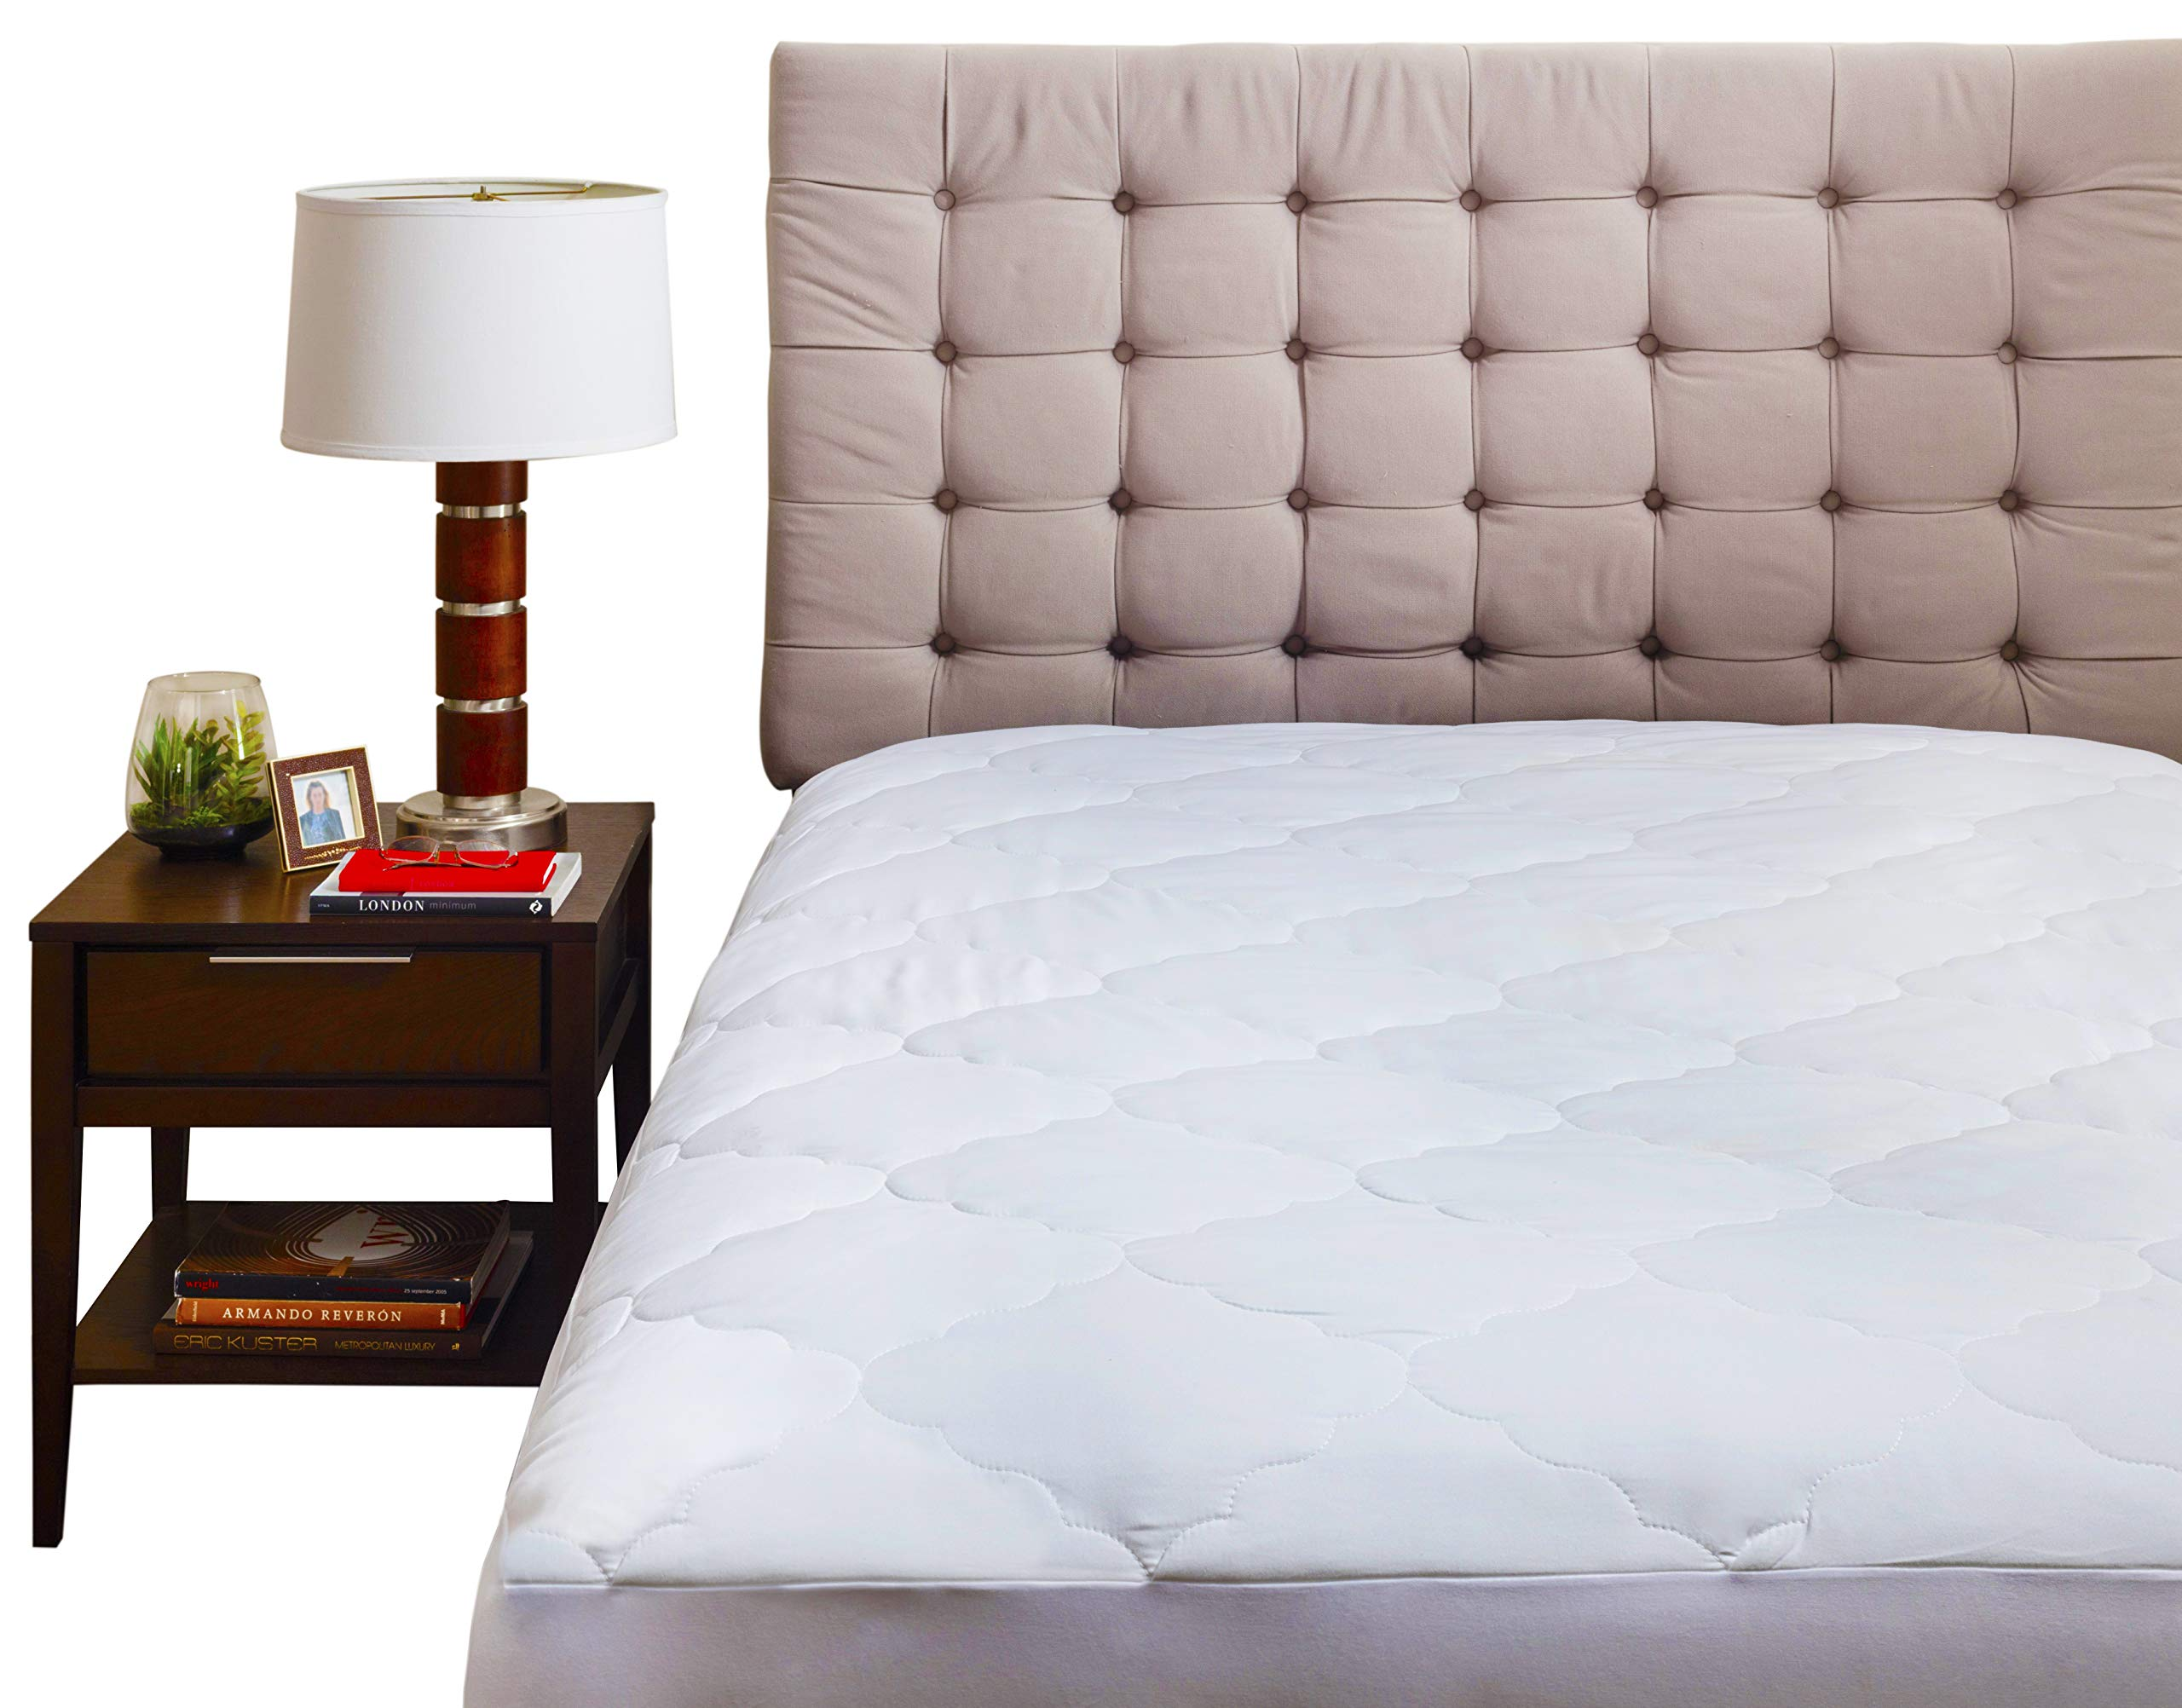 Micropuff Down Alternative Mattress Pad - White Quilted Fitted Mattress Topper (Twin Size - 39''x75'') Microfiber Mattress Cover Stretches up to 15''